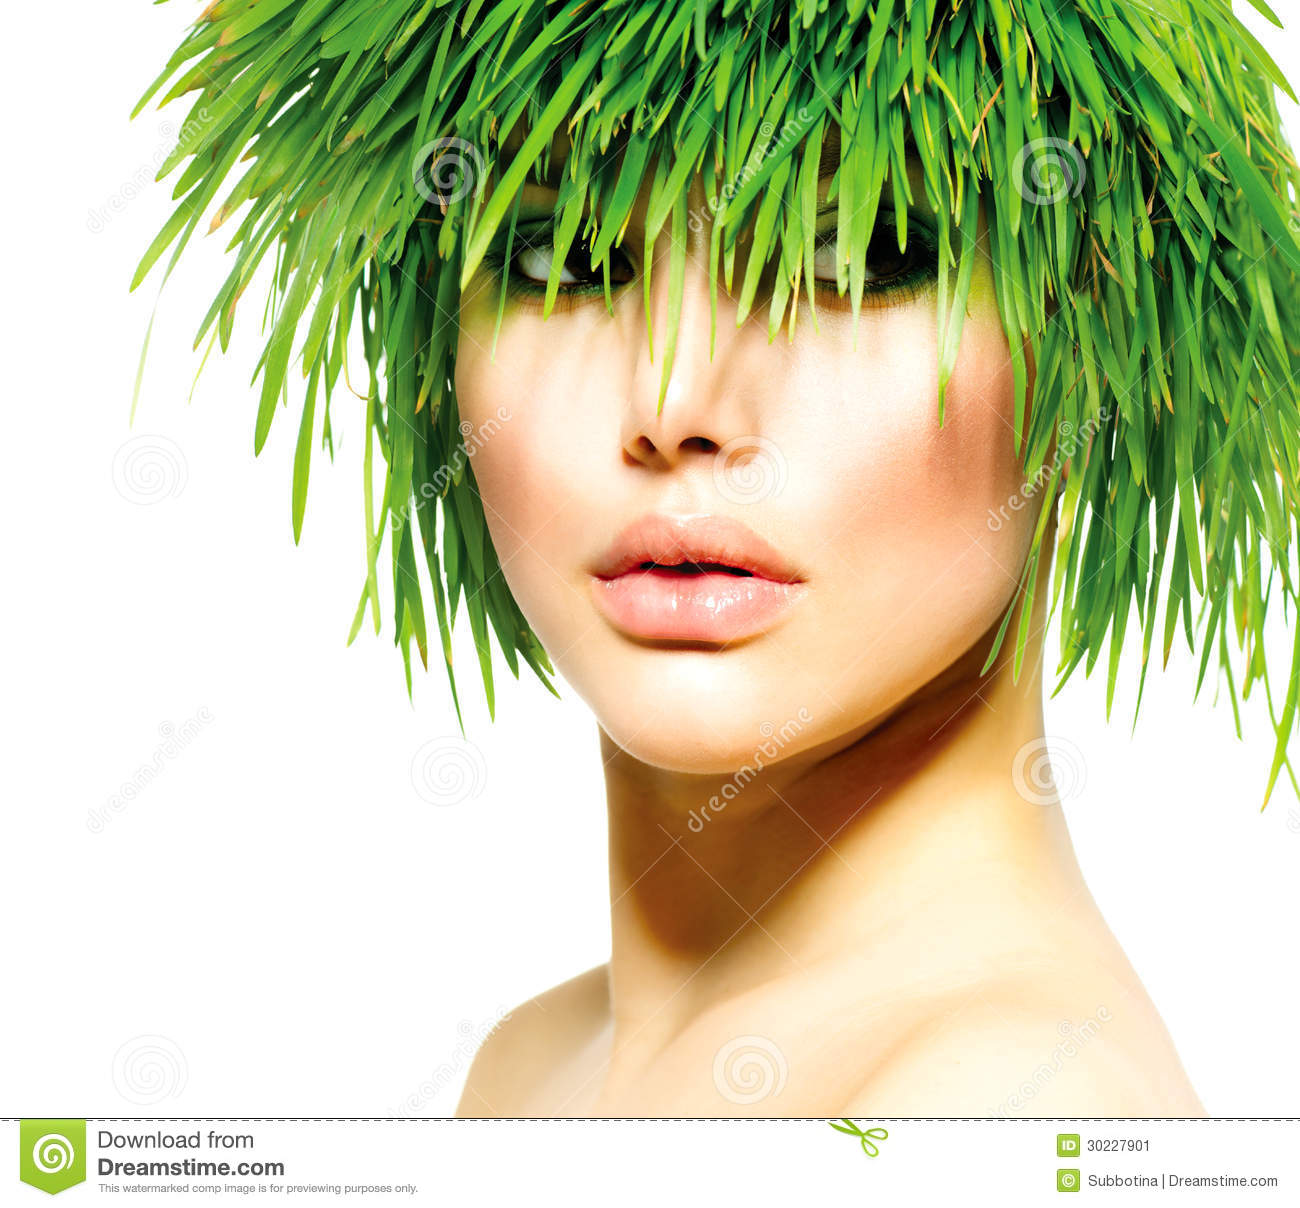 Woman With Green Grass Hair Stock Image